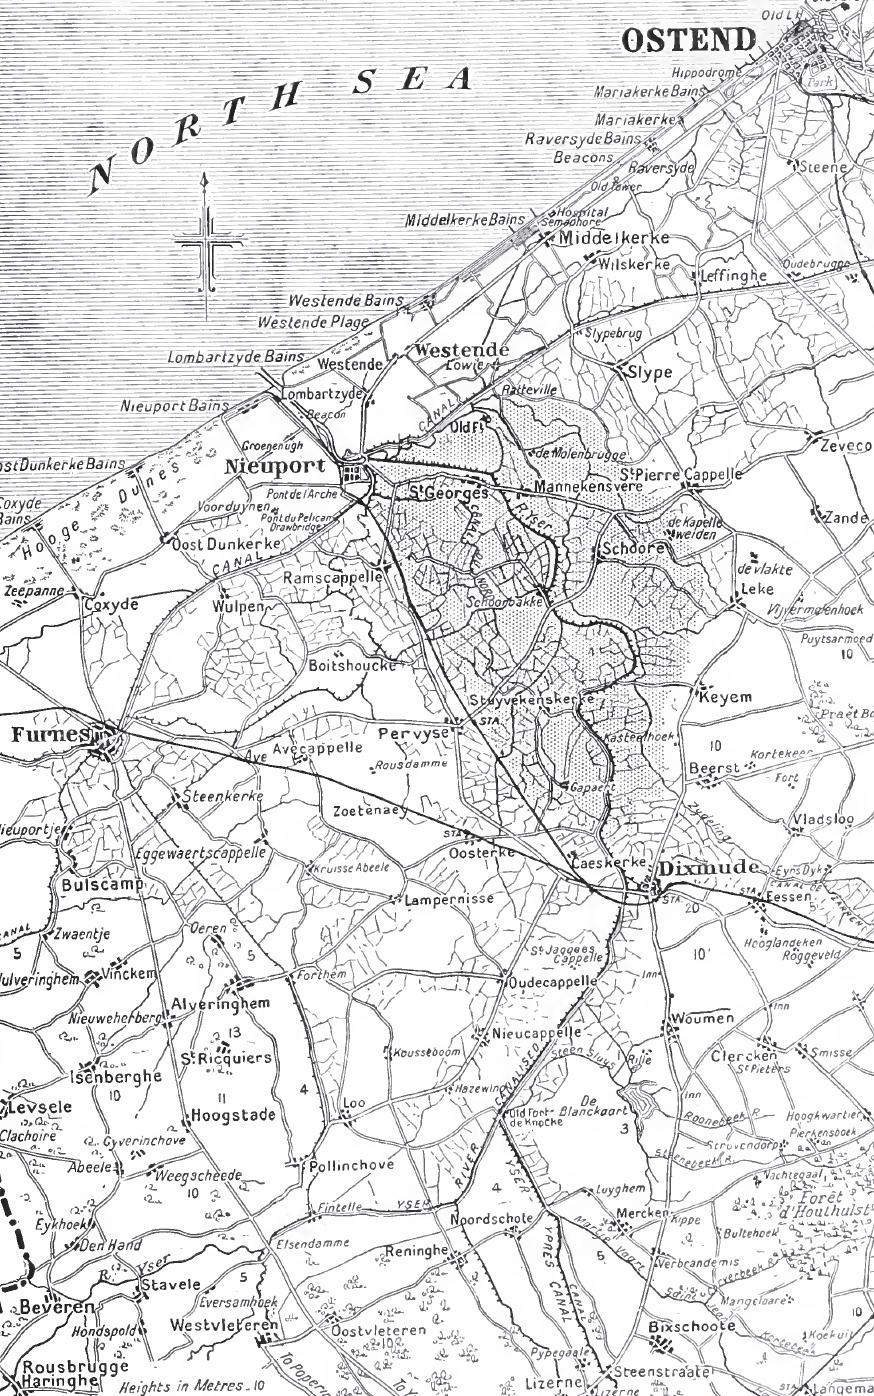 https://i0.wp.com/upload.wikimedia.org/wikipedia/commons/8/89/Yser_inundations_and_western_approaches_to_Houthoulst_Forest%2C_1914.jpg